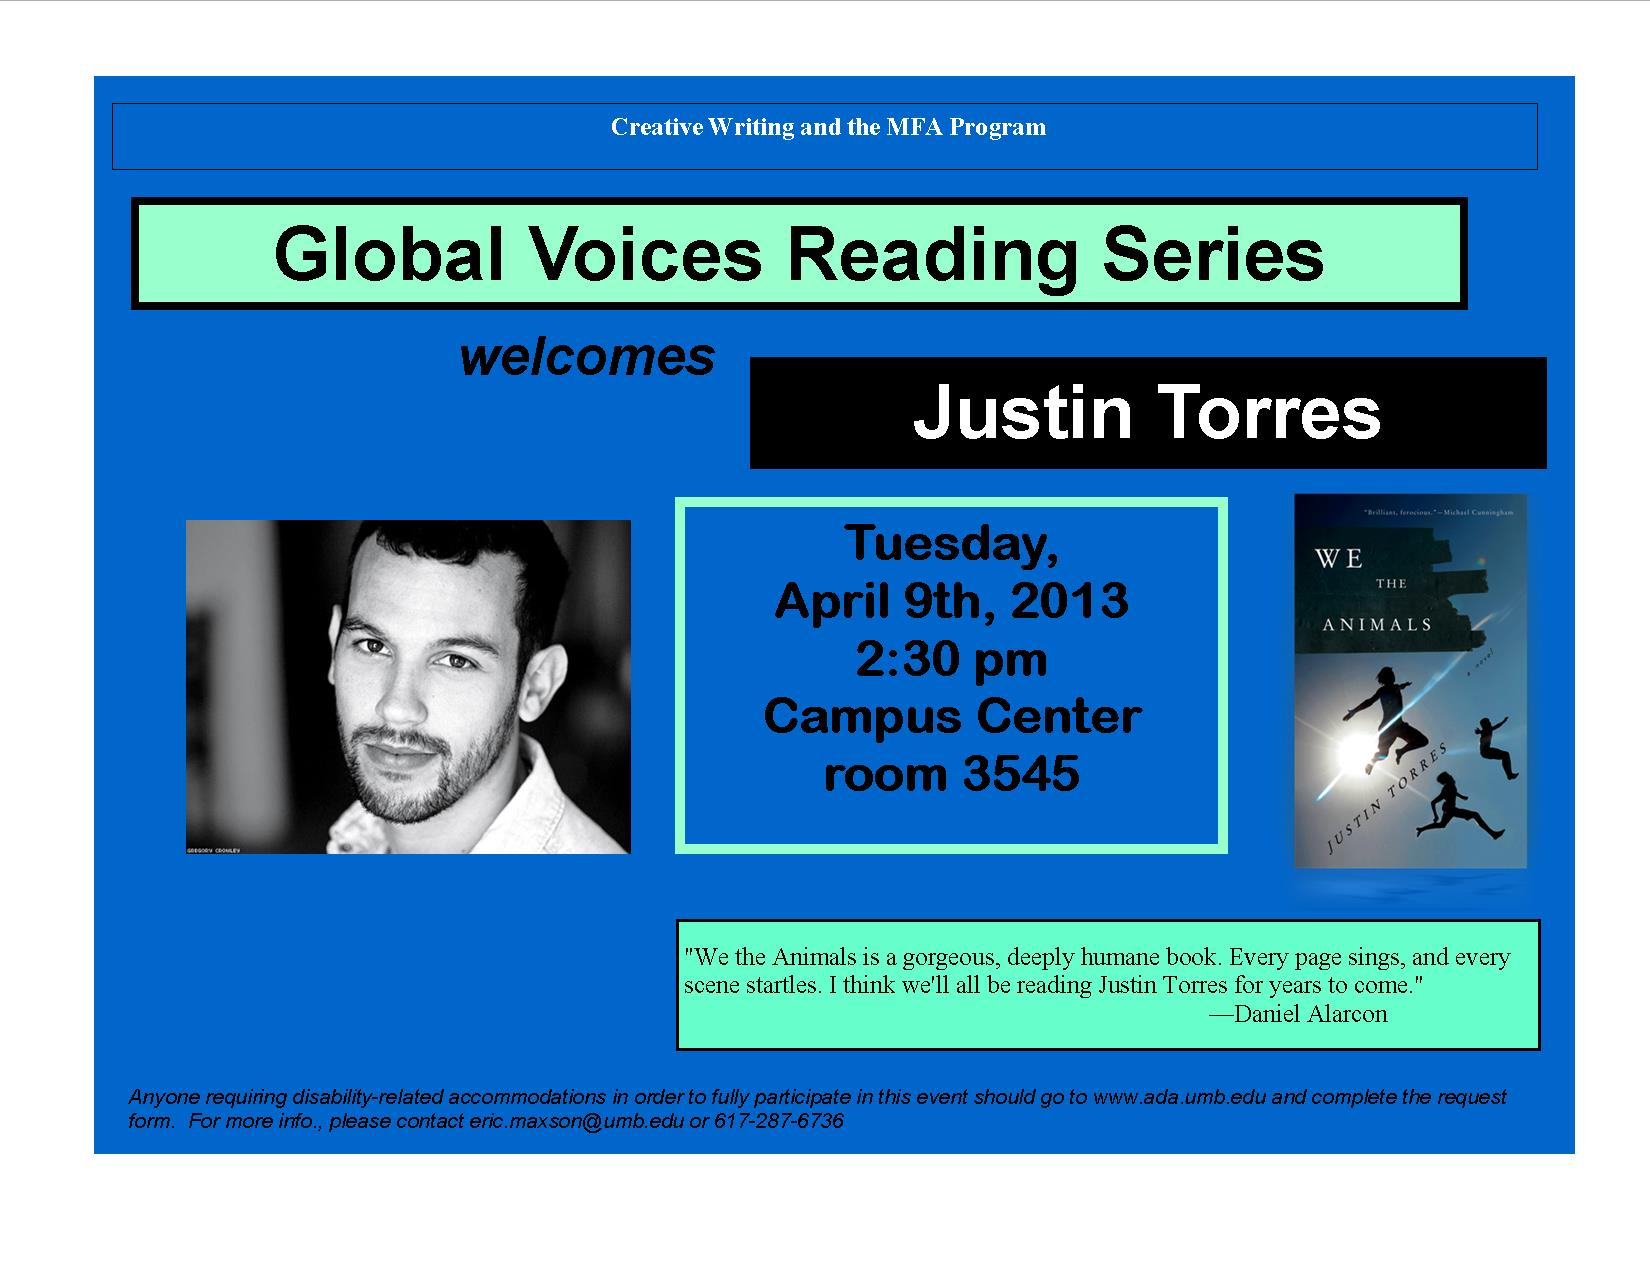 Creative Writing and the MFA program. Global Voices Reading Series welcomes Justin Torres. Tuesday, April 9th, 2013 Campus Center room 3545. Anyone requiring disability-related accommodations in order to fully participate in this event should go to www.ada.umb.edu and complete the request form. For more info., please contact eric.maxson@umb.edu or 617.287.6736